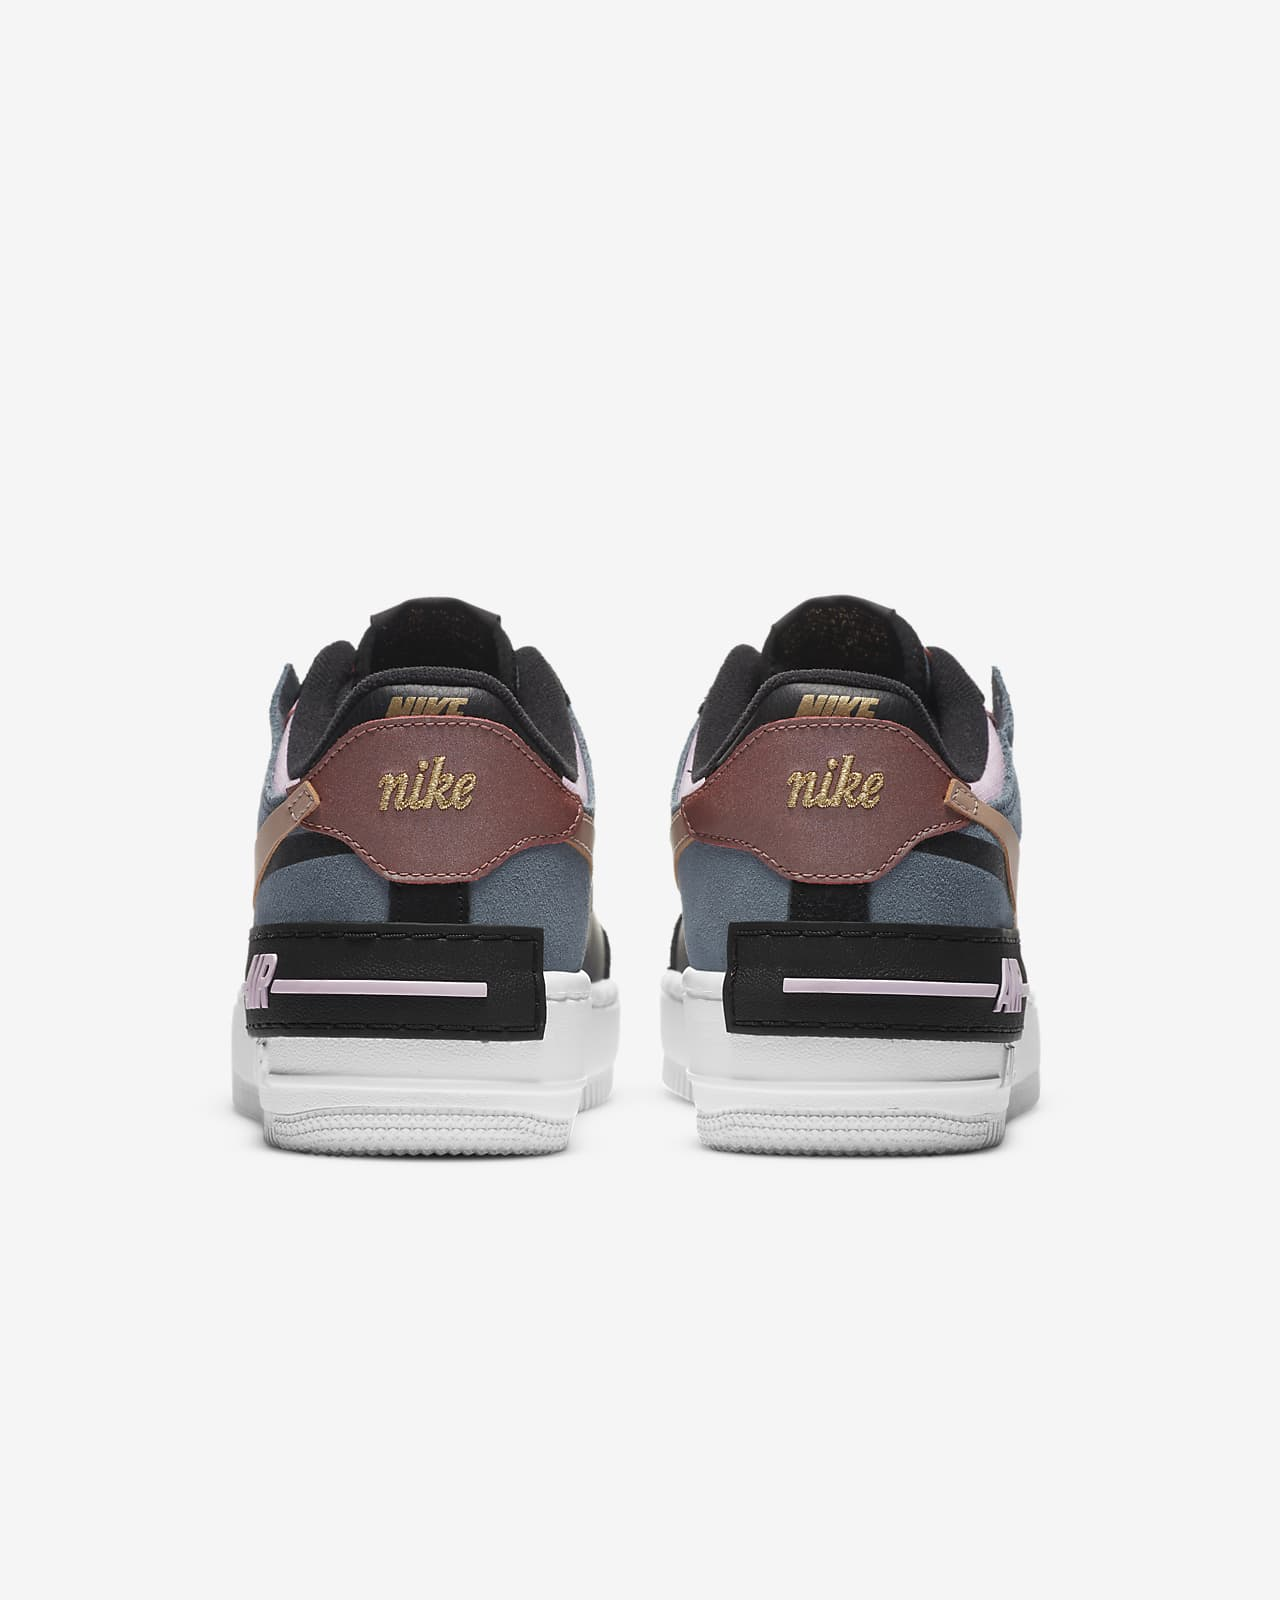 Nike Air Force 1 Shadow Women S Shoe Nike Com Black air force 1 jewel sneakers. nike air force 1 shadow women s shoe